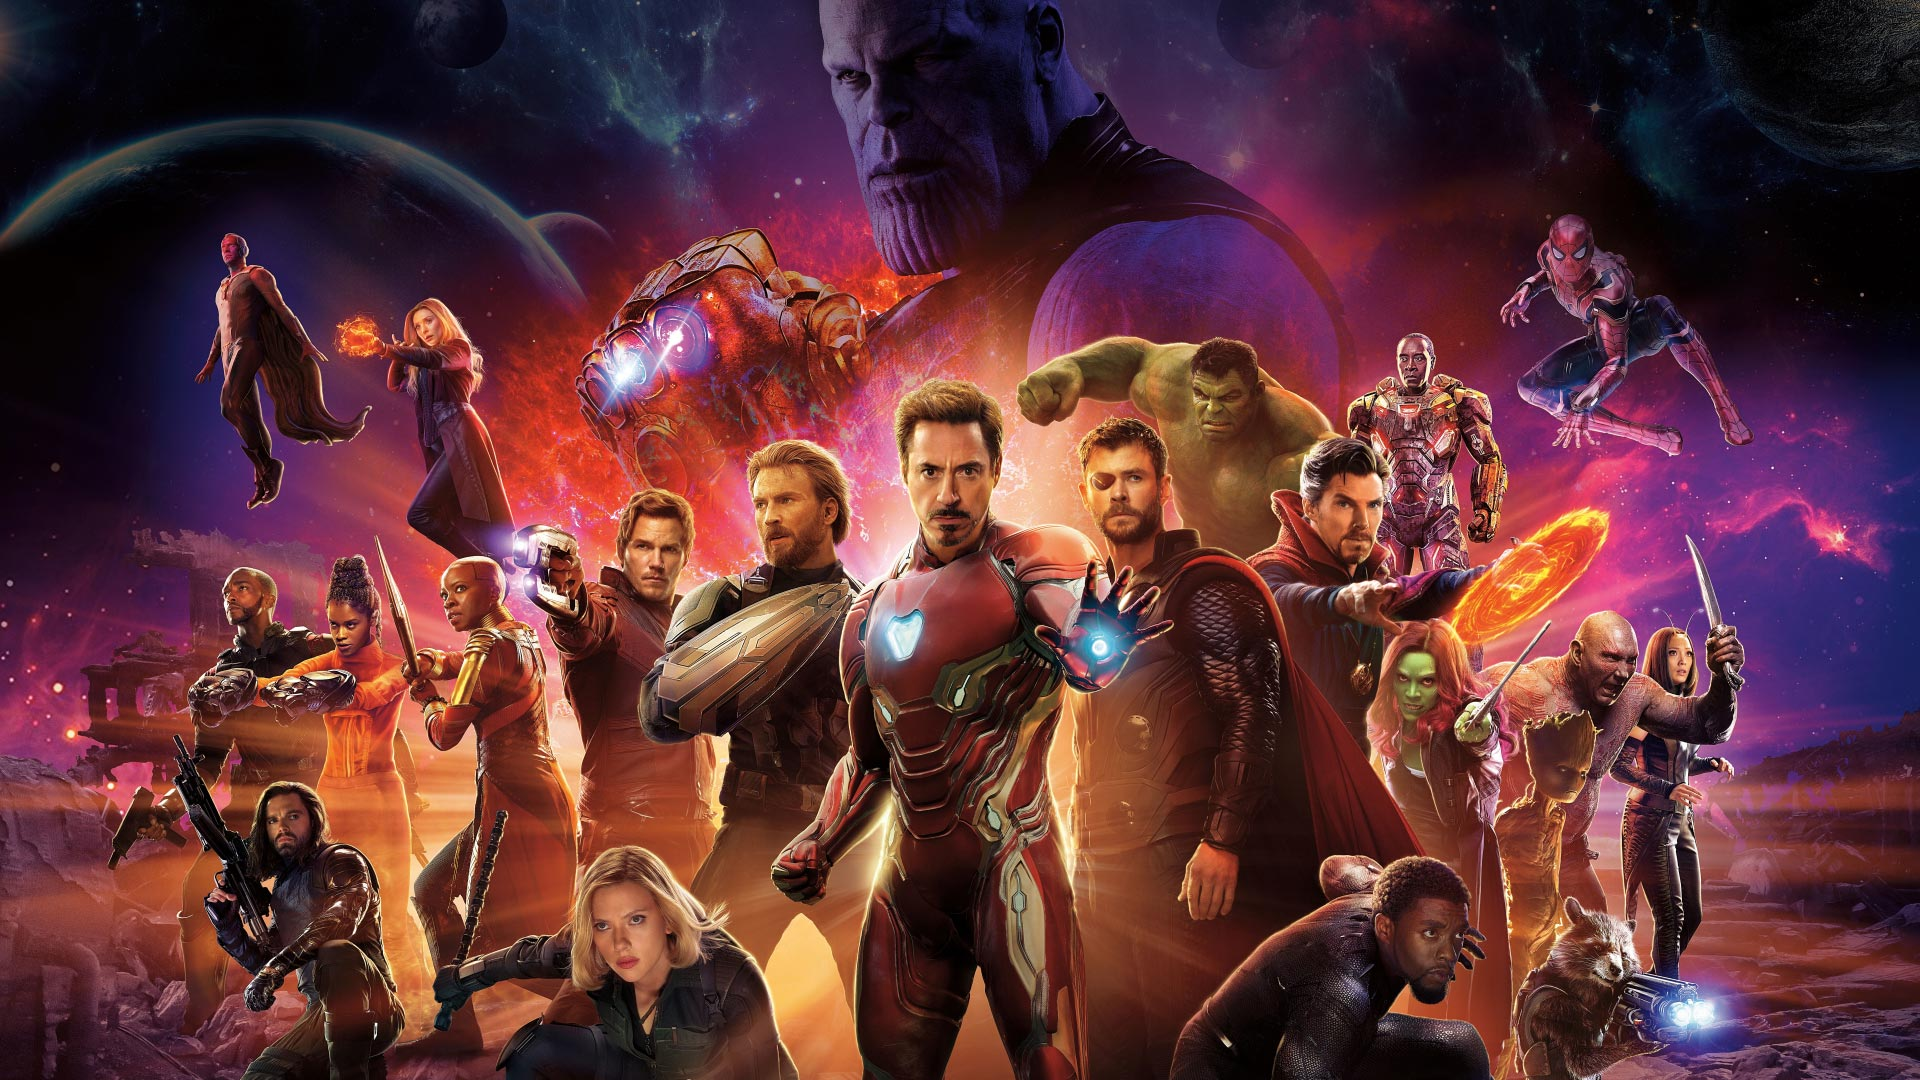 Avengers Infinity War Theme for Windows 10 8 7 1920x1080